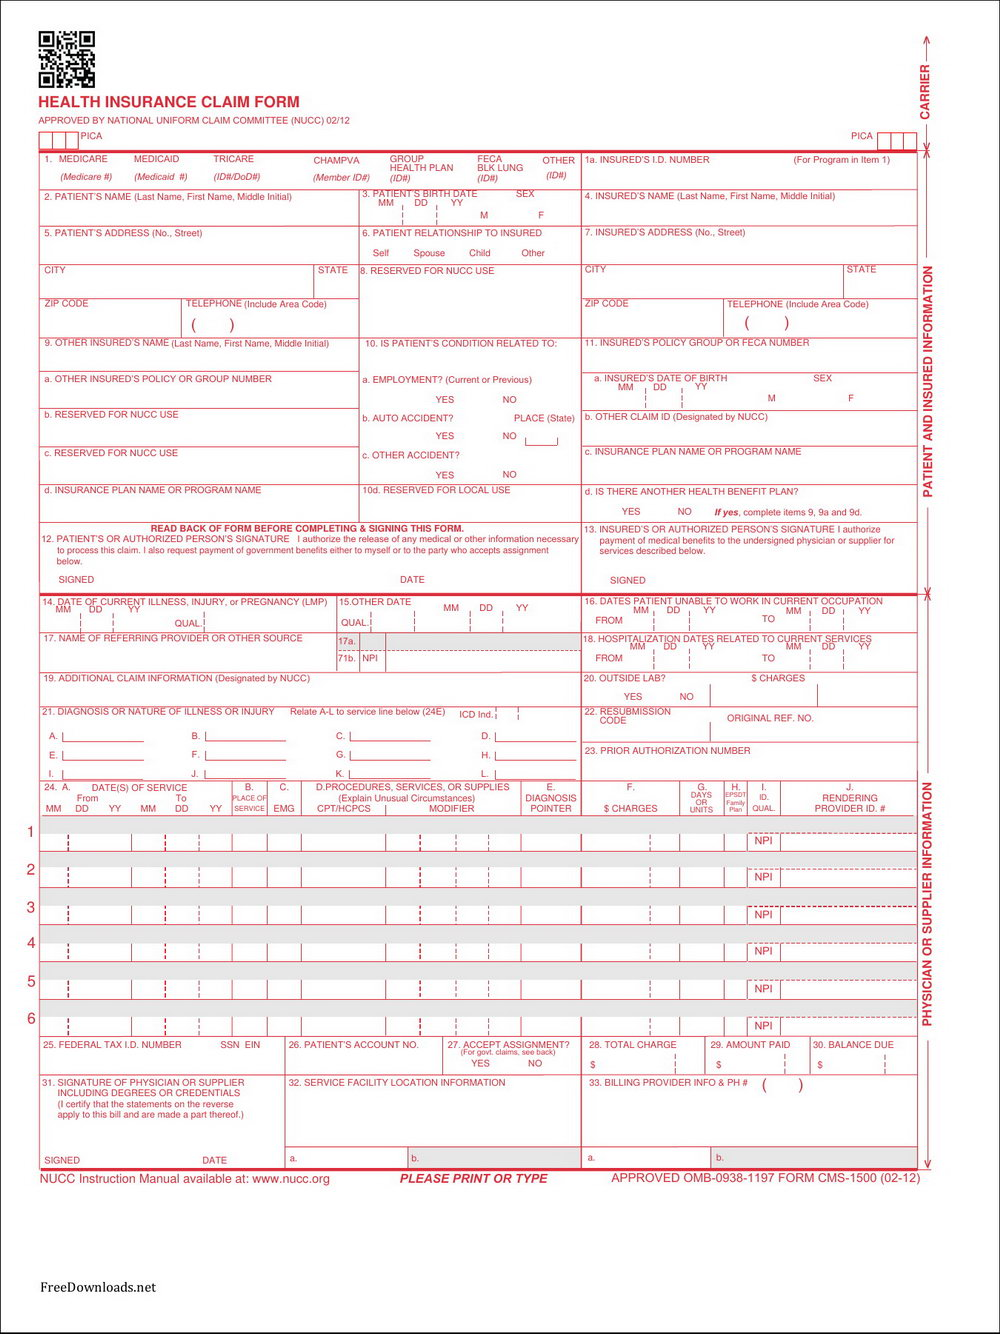 Cms 1500 Form Fillable Software